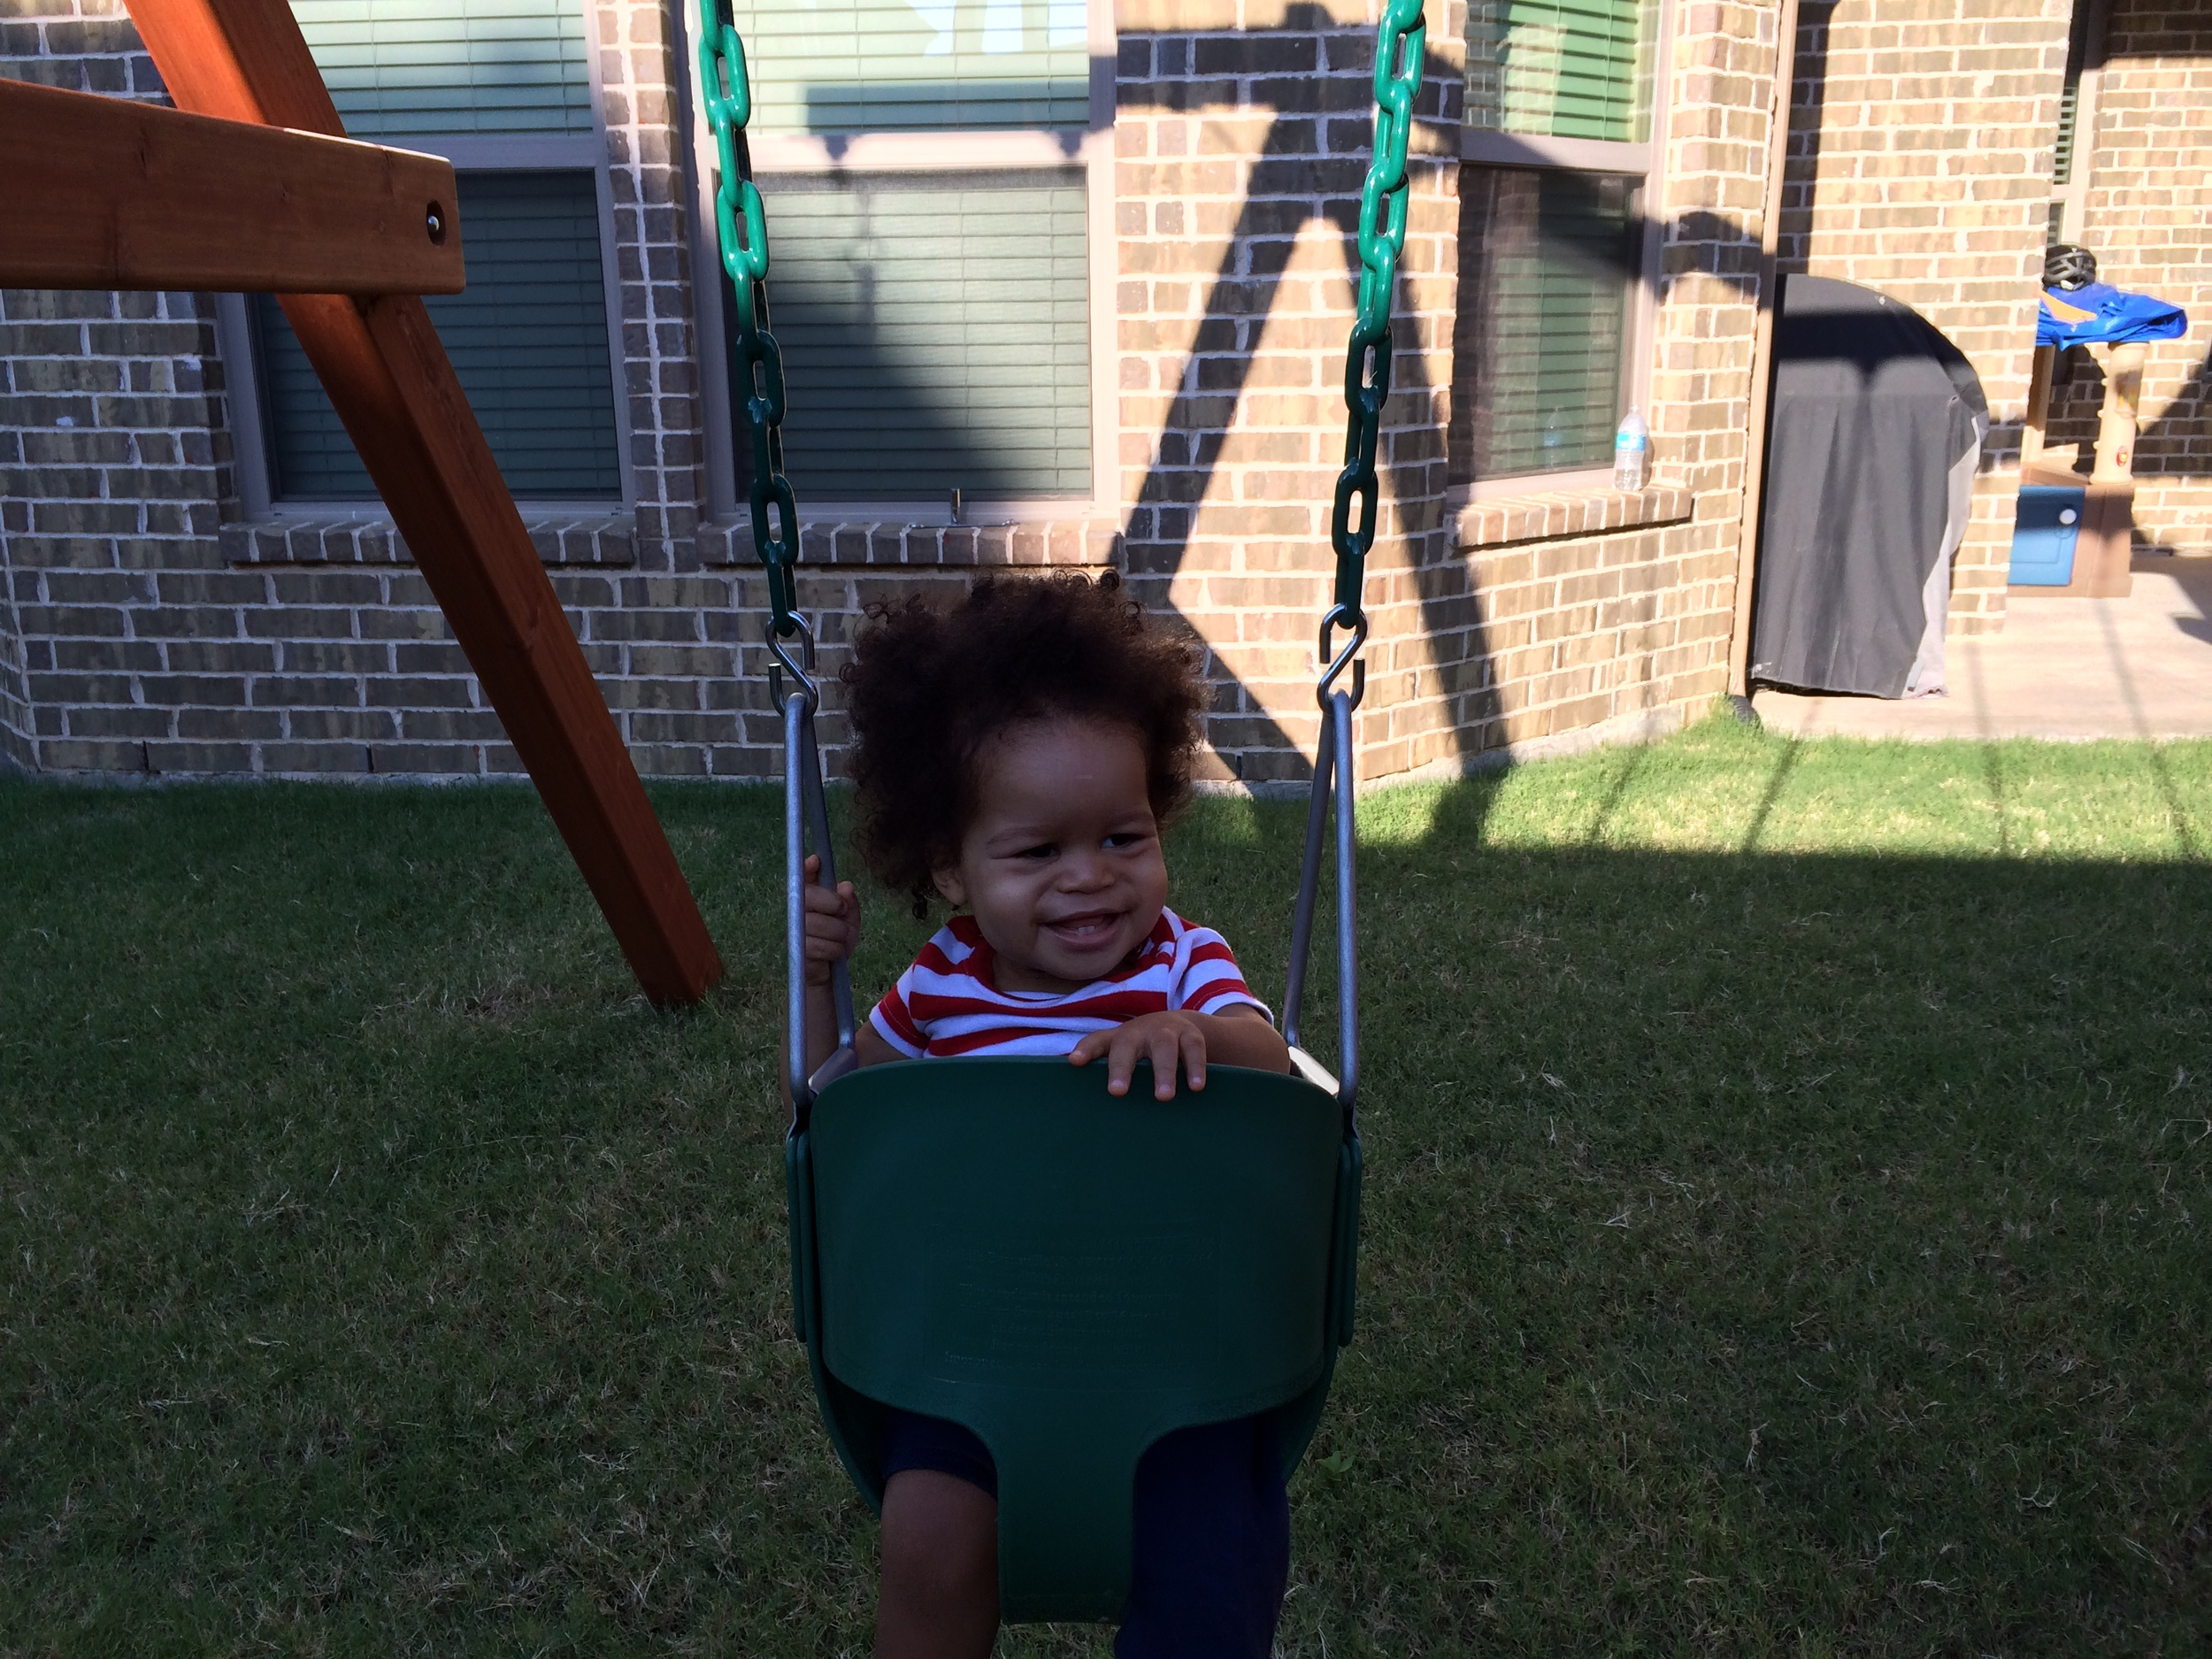 I knew he would like the swing once he started feeling better.